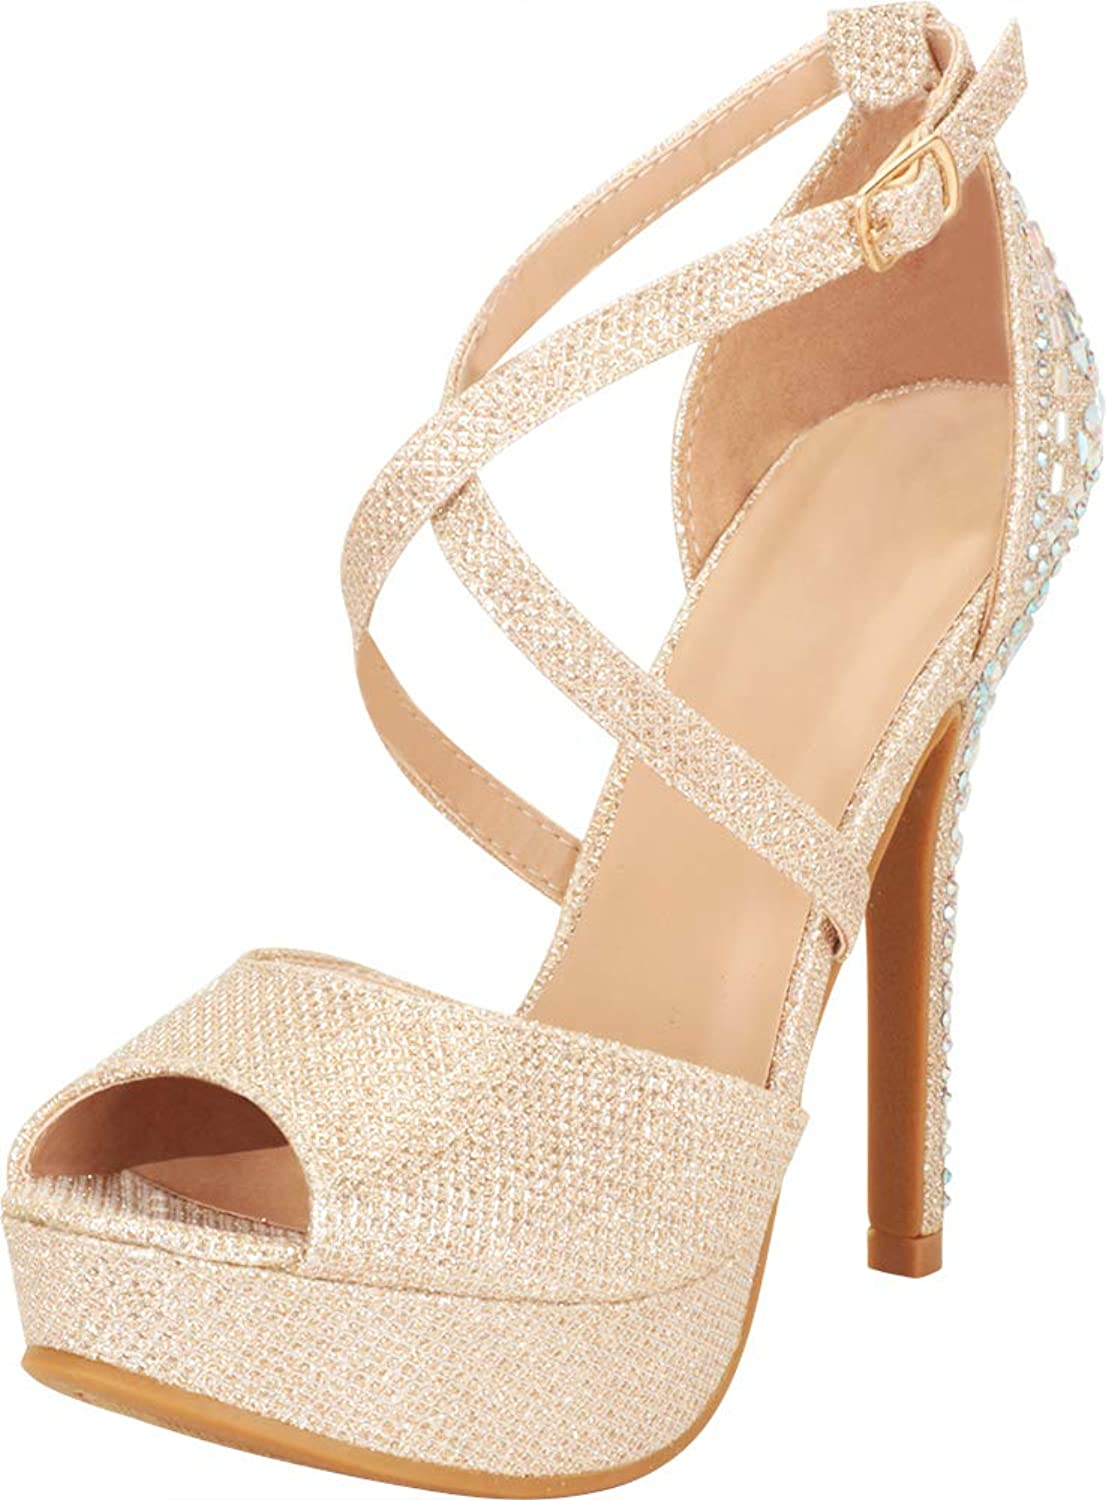 Cambridge Select Women's Open Toe Crisscross Strappy Crystal Rhinestone Platform Stiletto Heel Dress Sandal